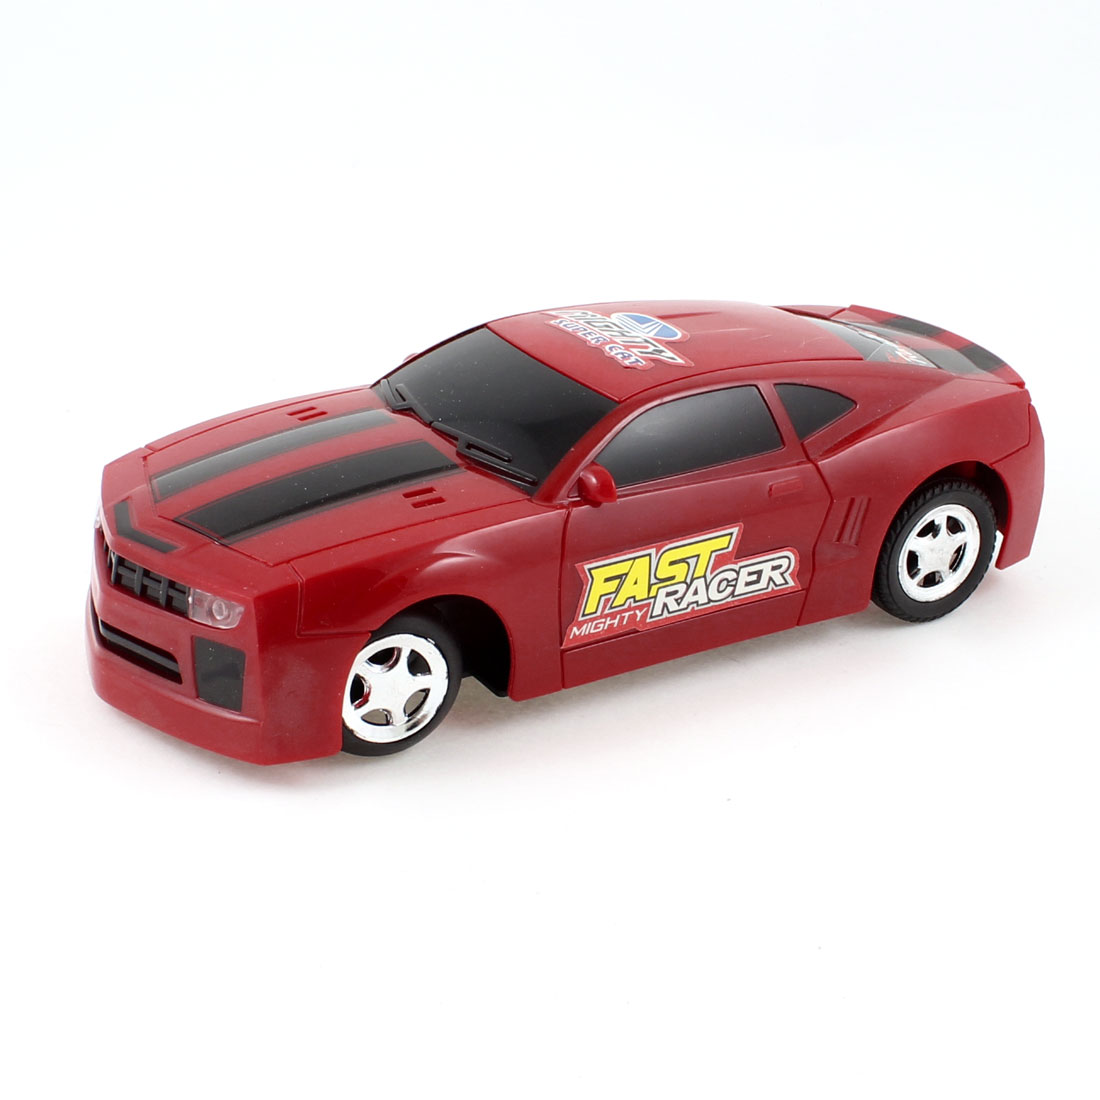 Red Battery Power Supply Sound Activated R/C Running Car Toy for Kids